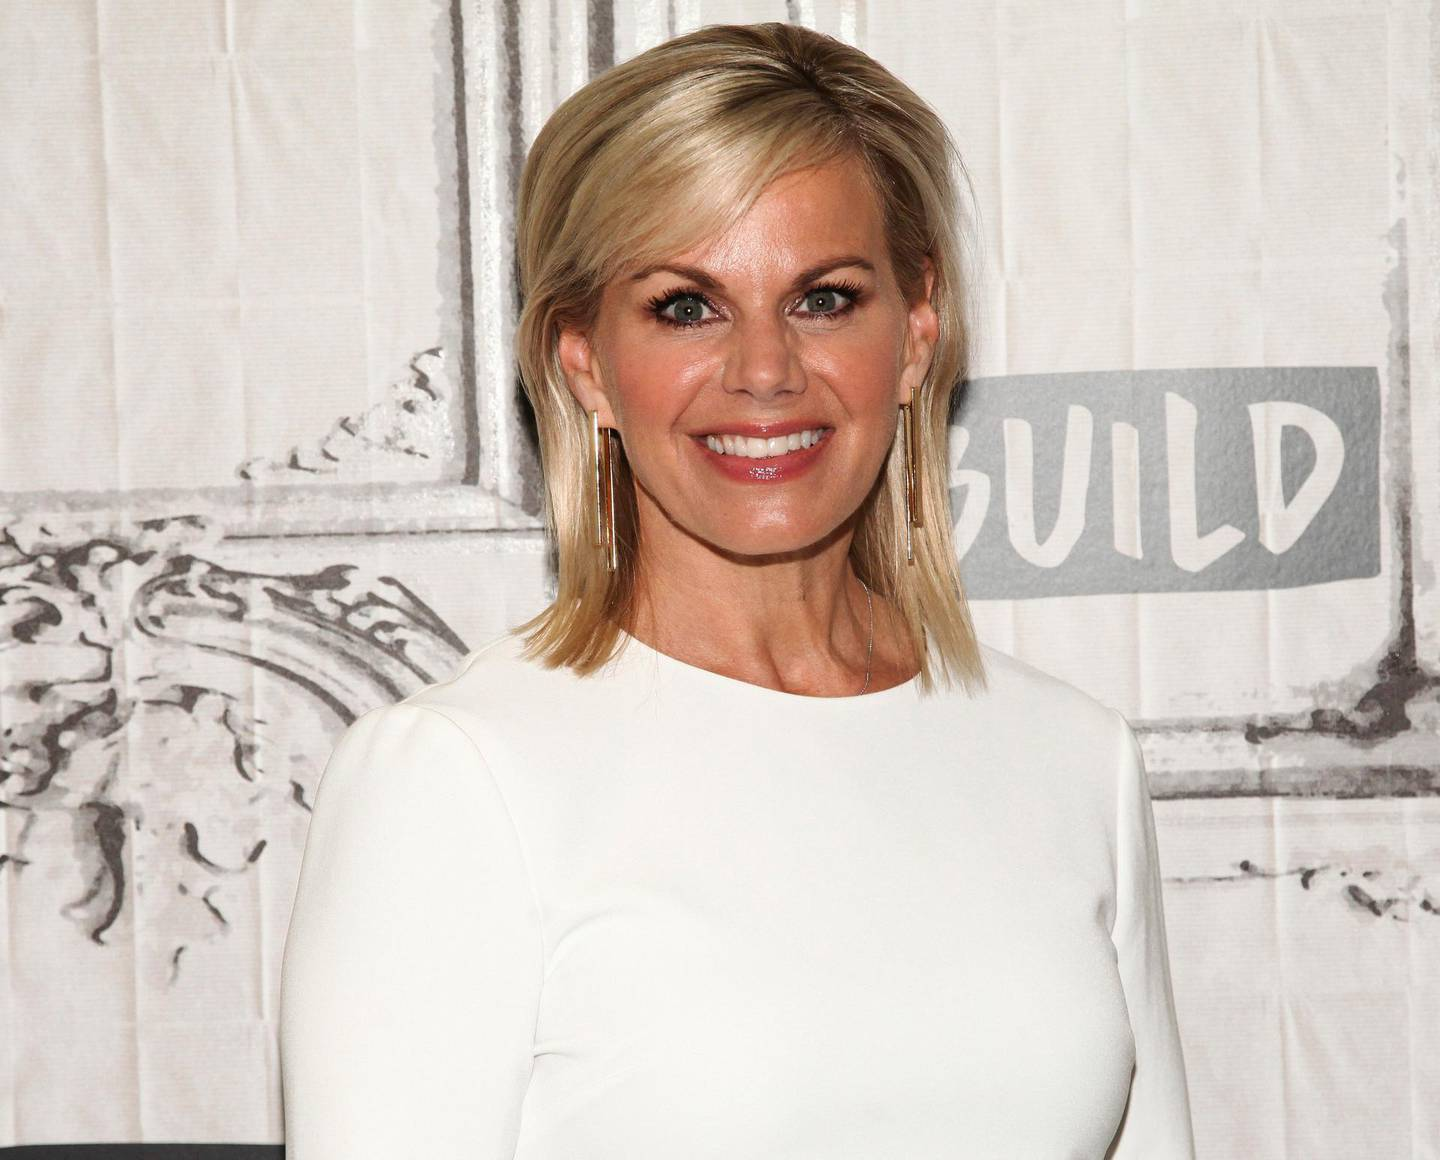 """FILE - In this Oct. 17, 2017, file photo, Gretchen Carlson participates in the BUILD Speaker Series to discuss her book """"Be Fierce: Stop Harassment and Take Back Your Power"""" at AOL Studios in New York. The Miss America Organization is dropping the swimsuit competition from its nationally televised broadcast, saying it will no longer judge contestants in their appearance. Carlson, a former Miss America who is head of the organization's board of trustees, made the announcement Tuesday, June 5, 2018, on """"Good Morning America.""""  (Photo by Andy Kropa/Invision/AP, File)"""